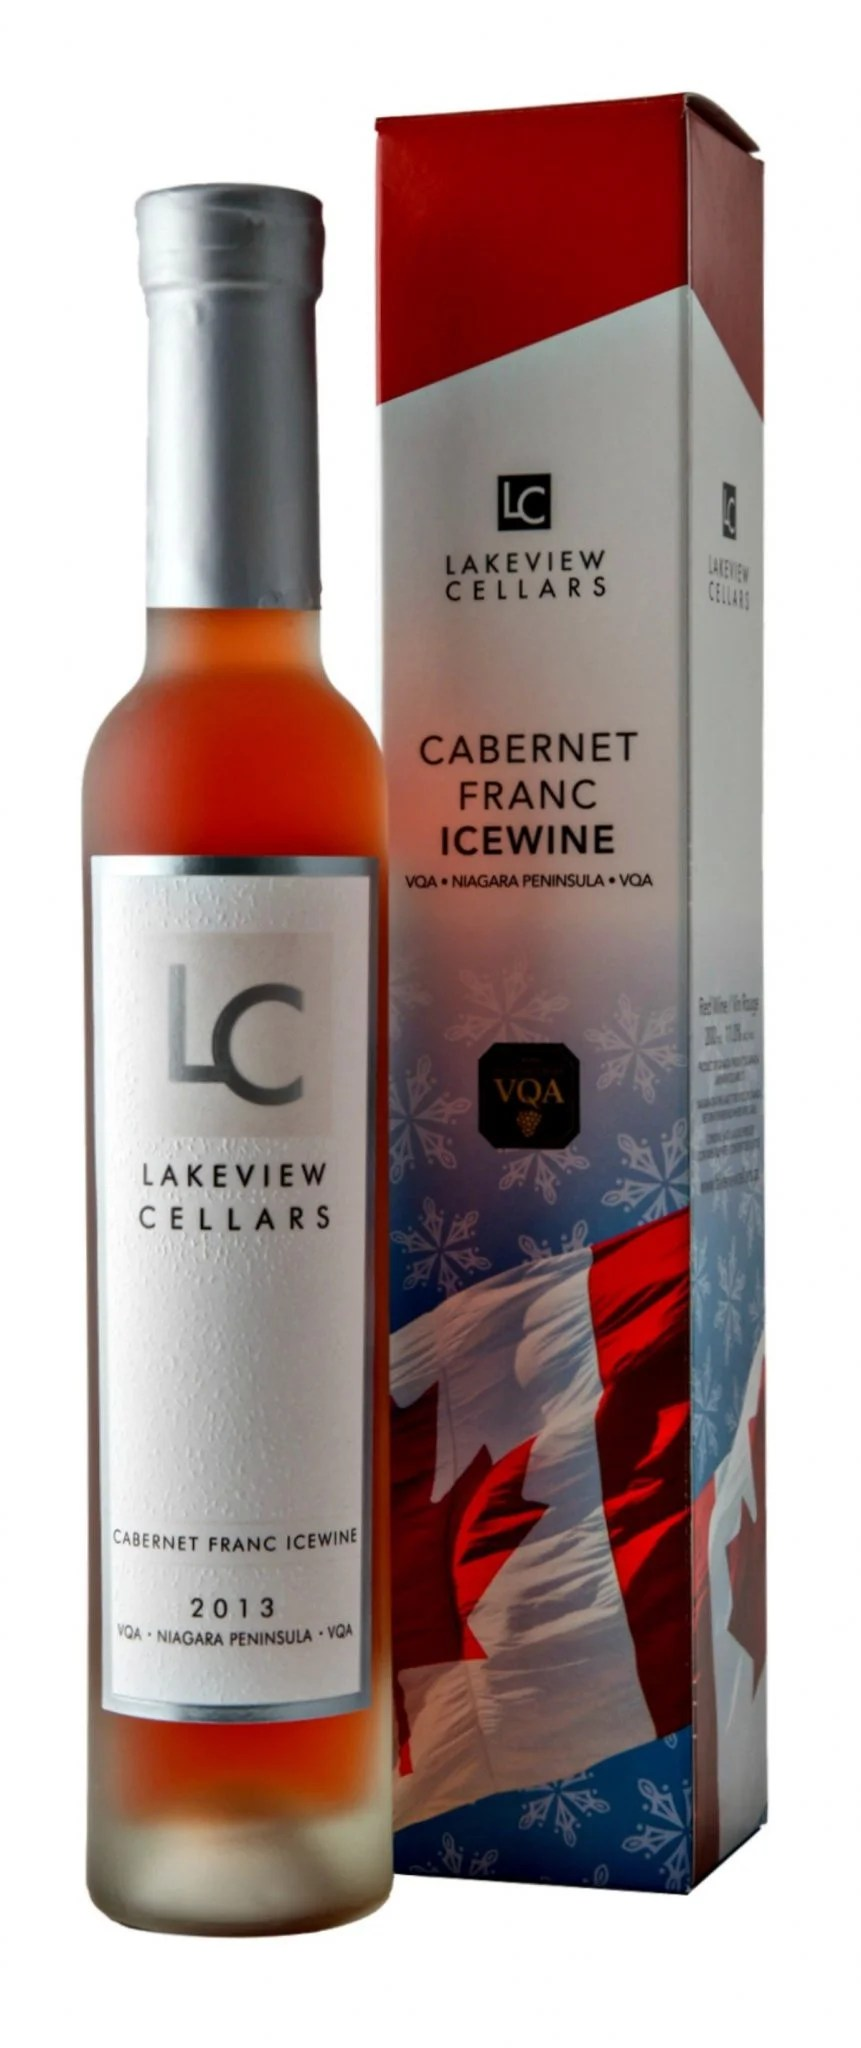 t is a world-renowned style of wine that can only be crafted under specific -8 degree to -10 degree C temperatures, for which our cool Canadian climate is ideal. But to many Canadians, Icewine remains a bit of a mystery drink — they see a type of wine with deep colours in a skinny little bottle that they aren't used to seeing on the wine shelves in the liquor store. It looks different than a typical bottle of wine, so questions are raised about how it should be stored, serving temperature, pouring etiquette, proper glassware and what should be enjoyed with it.